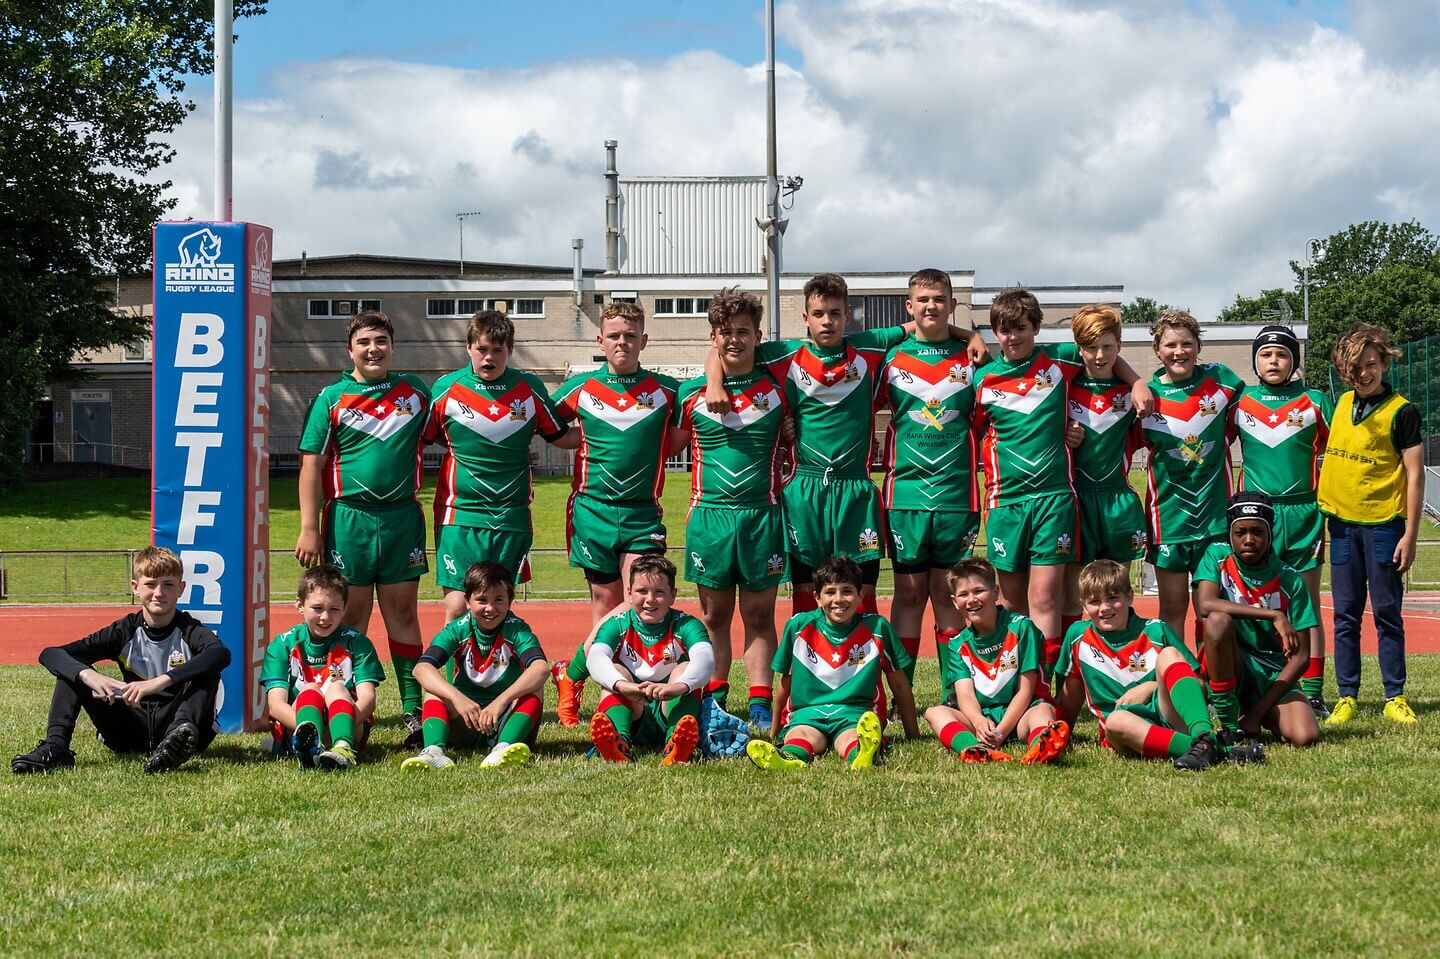 Report: North Wales Crusaders U13s 30-18 Thatto Heath Crusaders U13s